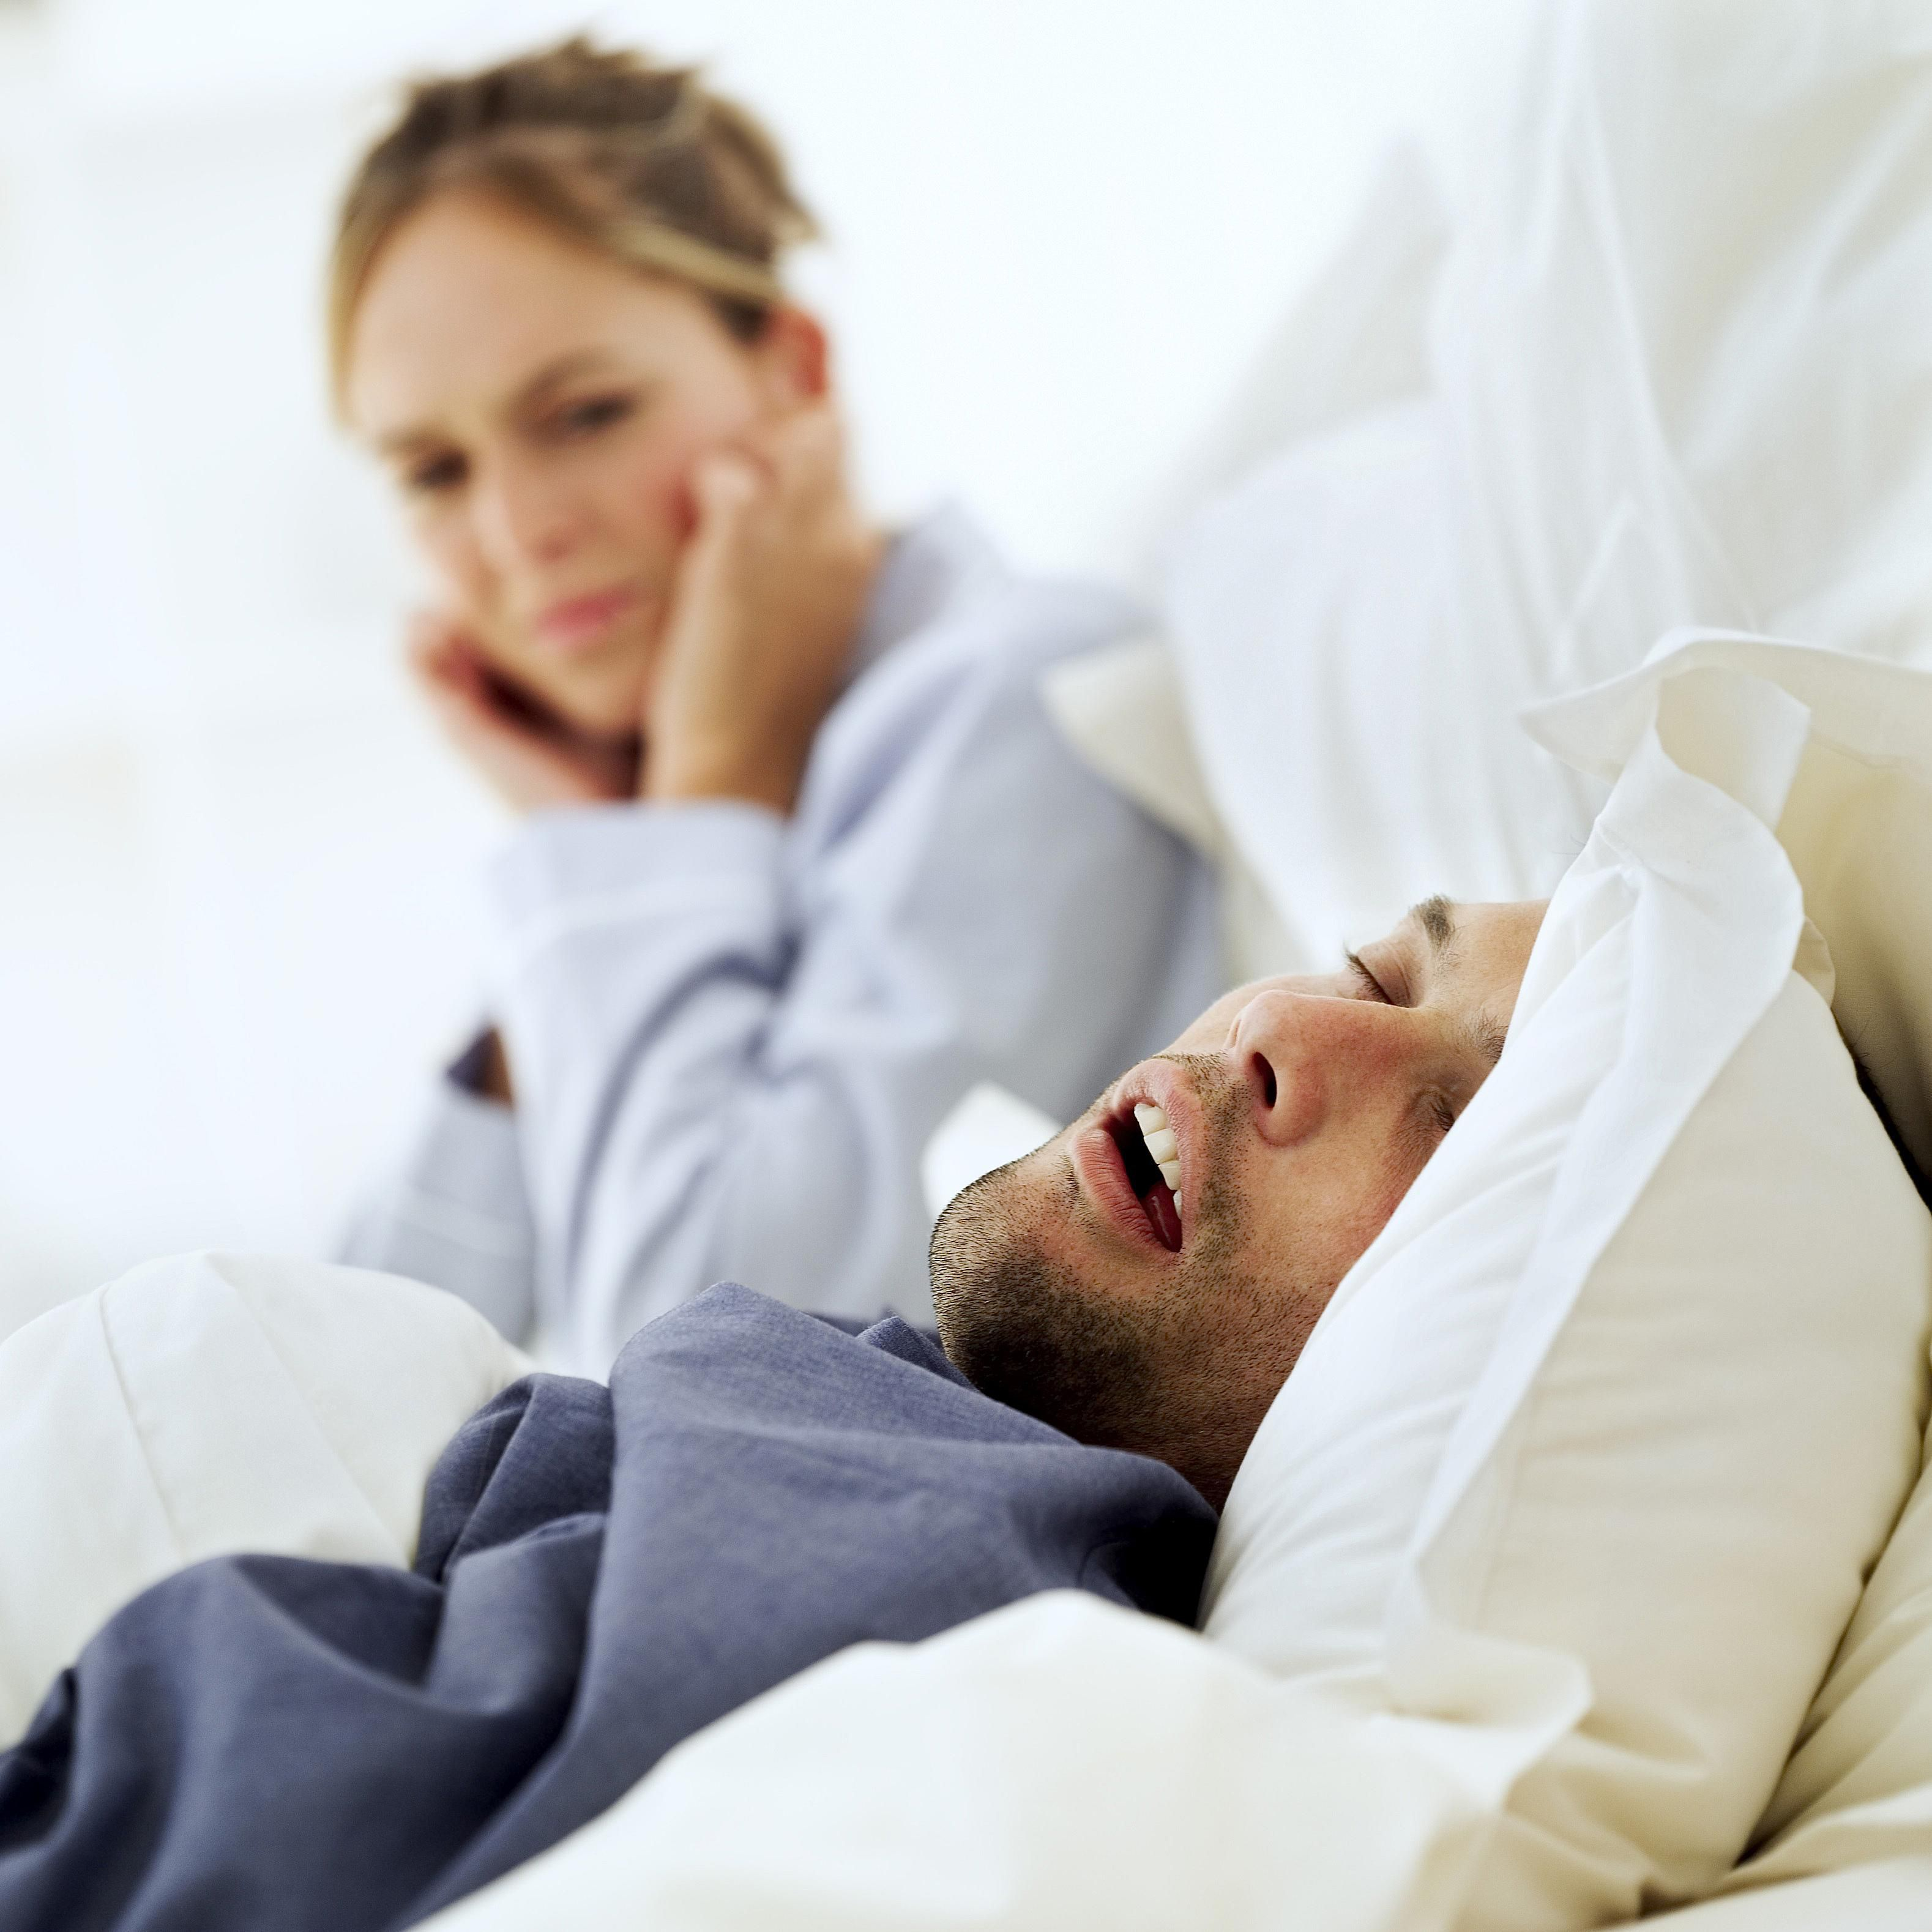 a covering remedies her discussion mayo pillow network woman and stop with the snoring man in aged ears couple news home middle clinic shutterstock bed